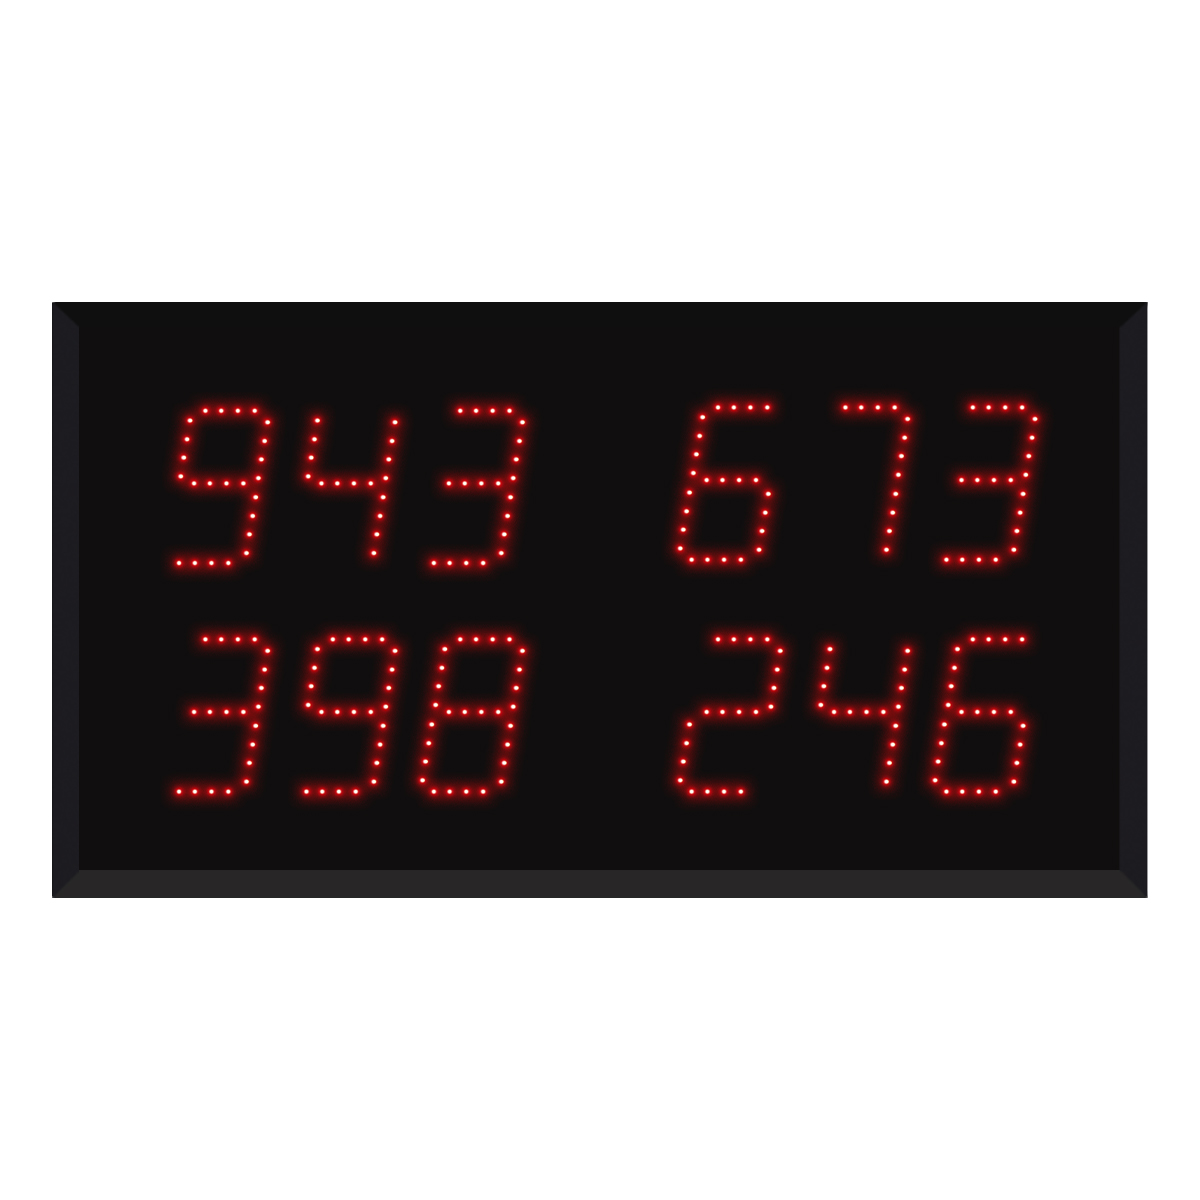 Model 9430 (4 by 3-Digit) Multi-Number Visual-Pager® Display